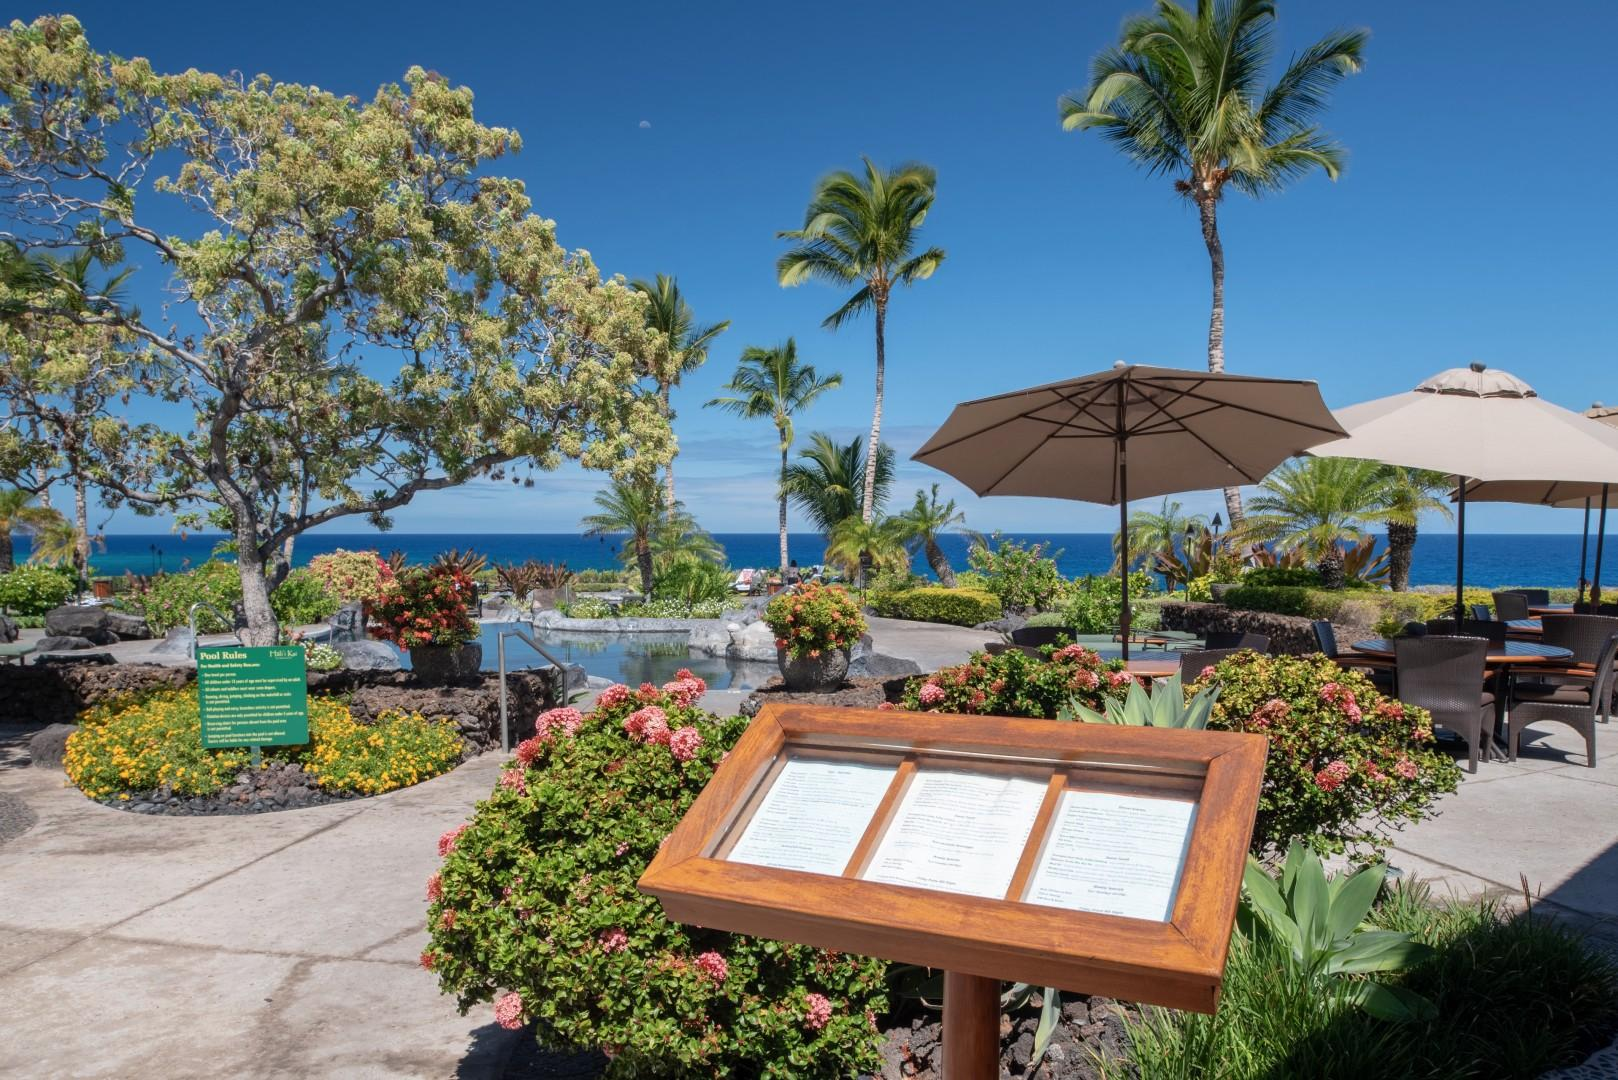 Attractive menu at the Hali'i Kai Ocean Club Bar & Grille, one of the only private restaurants on the island.